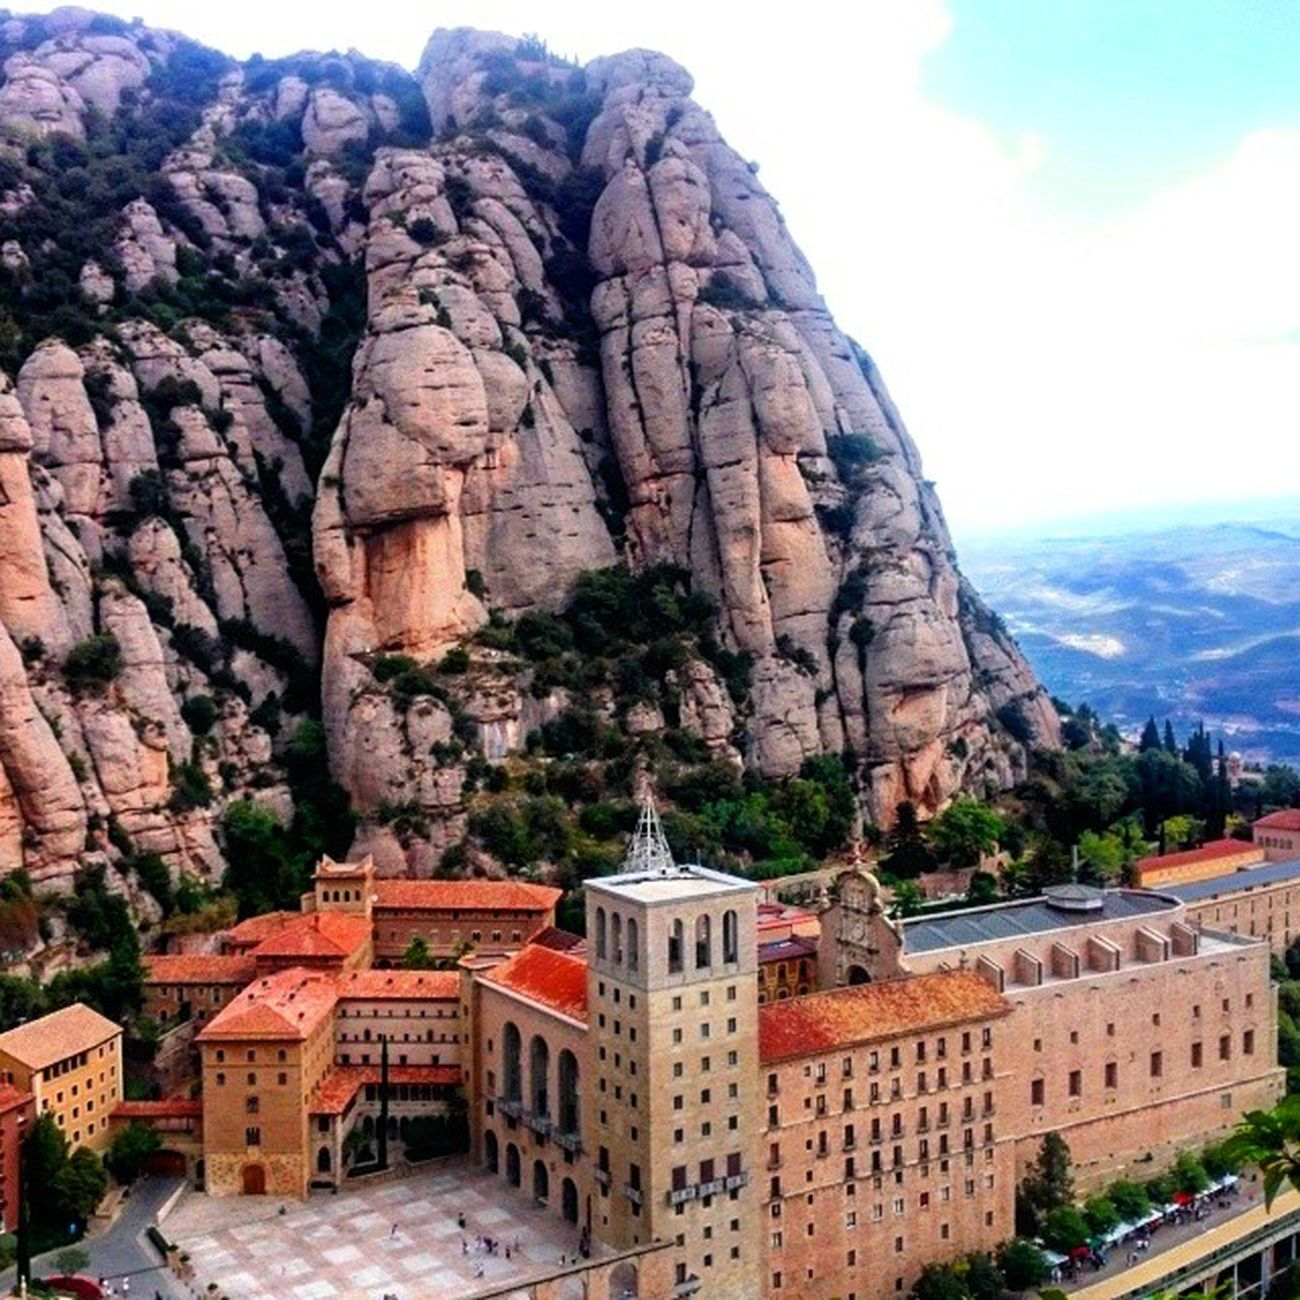 GettingHigh Travellingeveryday Romanticadventures 2ndDate Love Adventure Explore Conquer Travel Instagood Lovesundays Newadventureeveryday LovingLife Montserrat Catalonia Europe SPAIN Cool Awesome Catholic Historic Cathedral Religion Culture